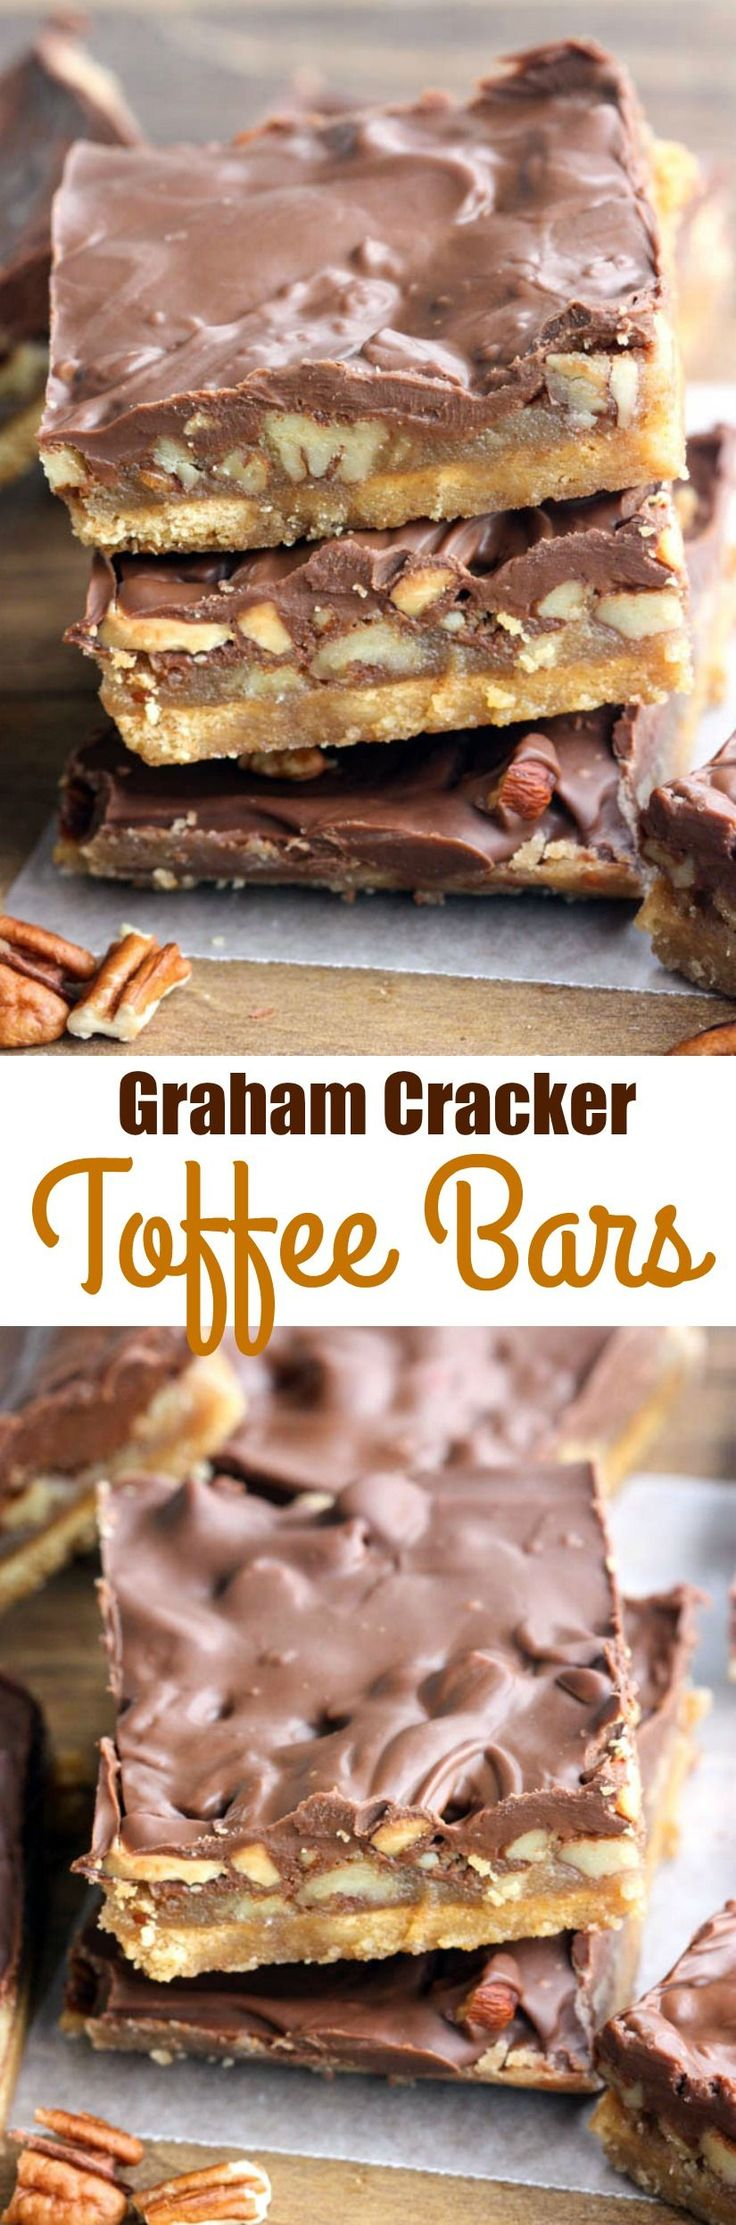 Graham Cracker Toffee Bars - only 5 ingredients to make the tastiest, easiest toffee bars! Perfect for an easy holiday treat. | Tastes Better From Scratch